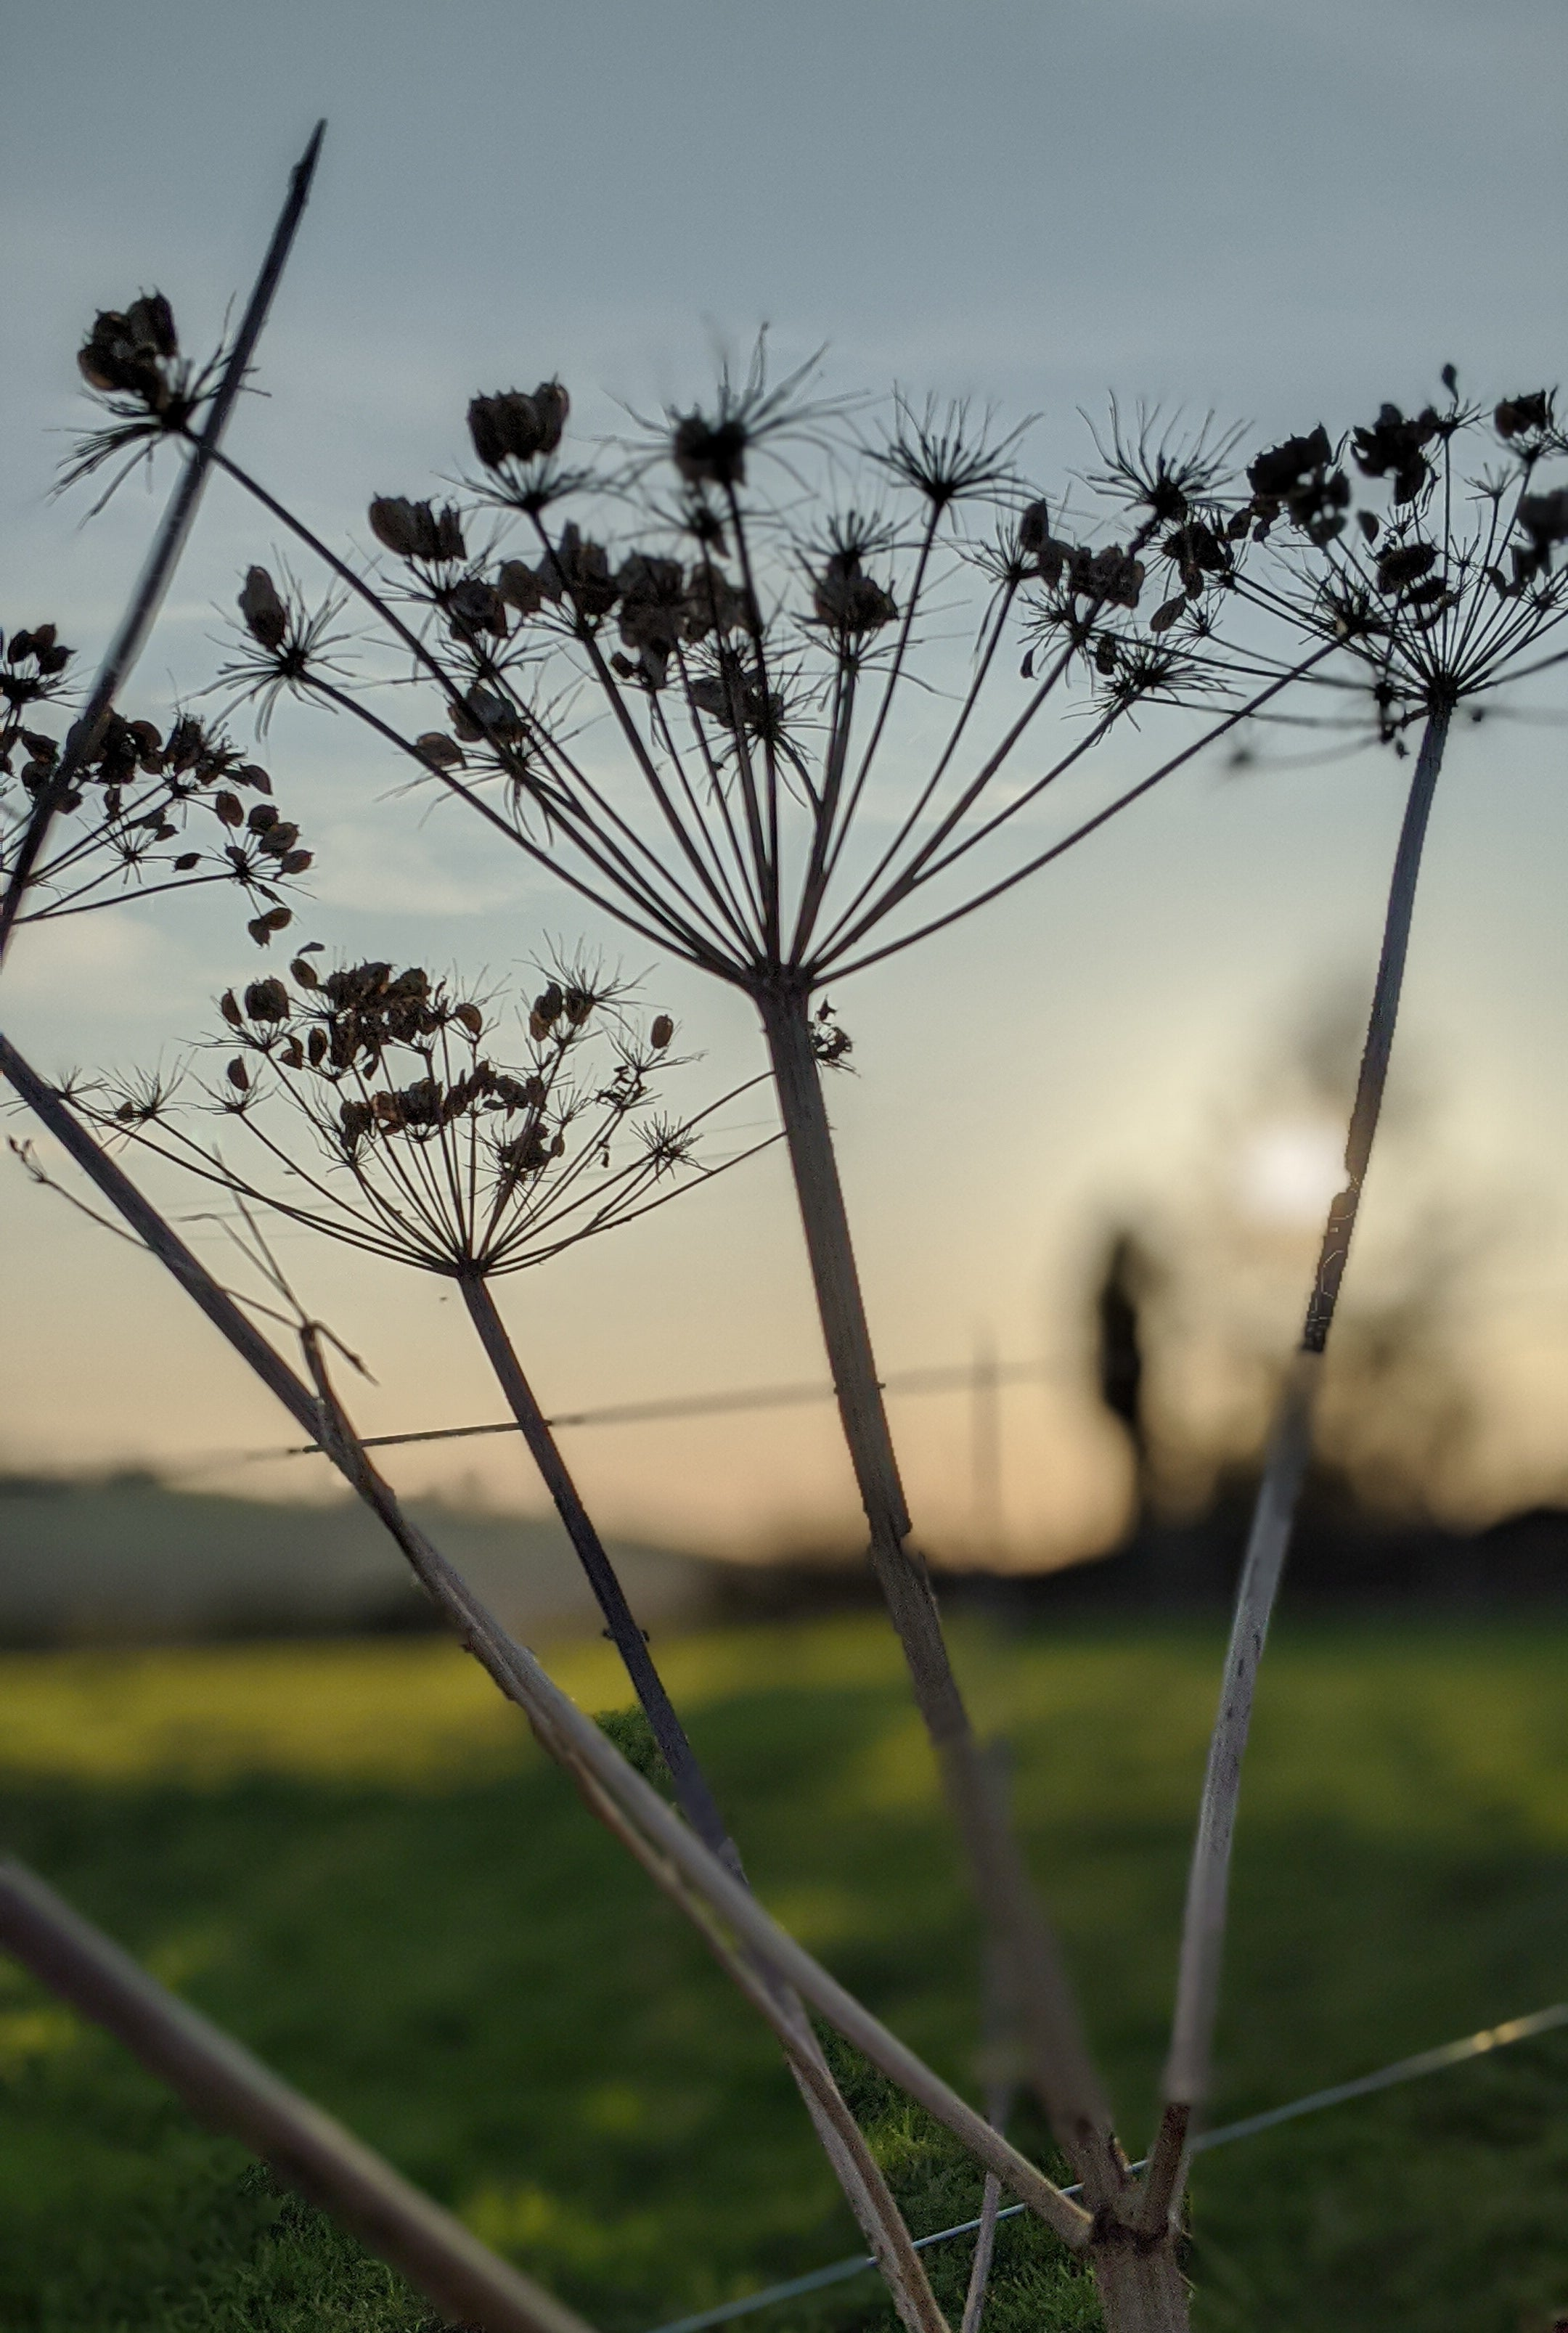 hogweed seed head at sunset